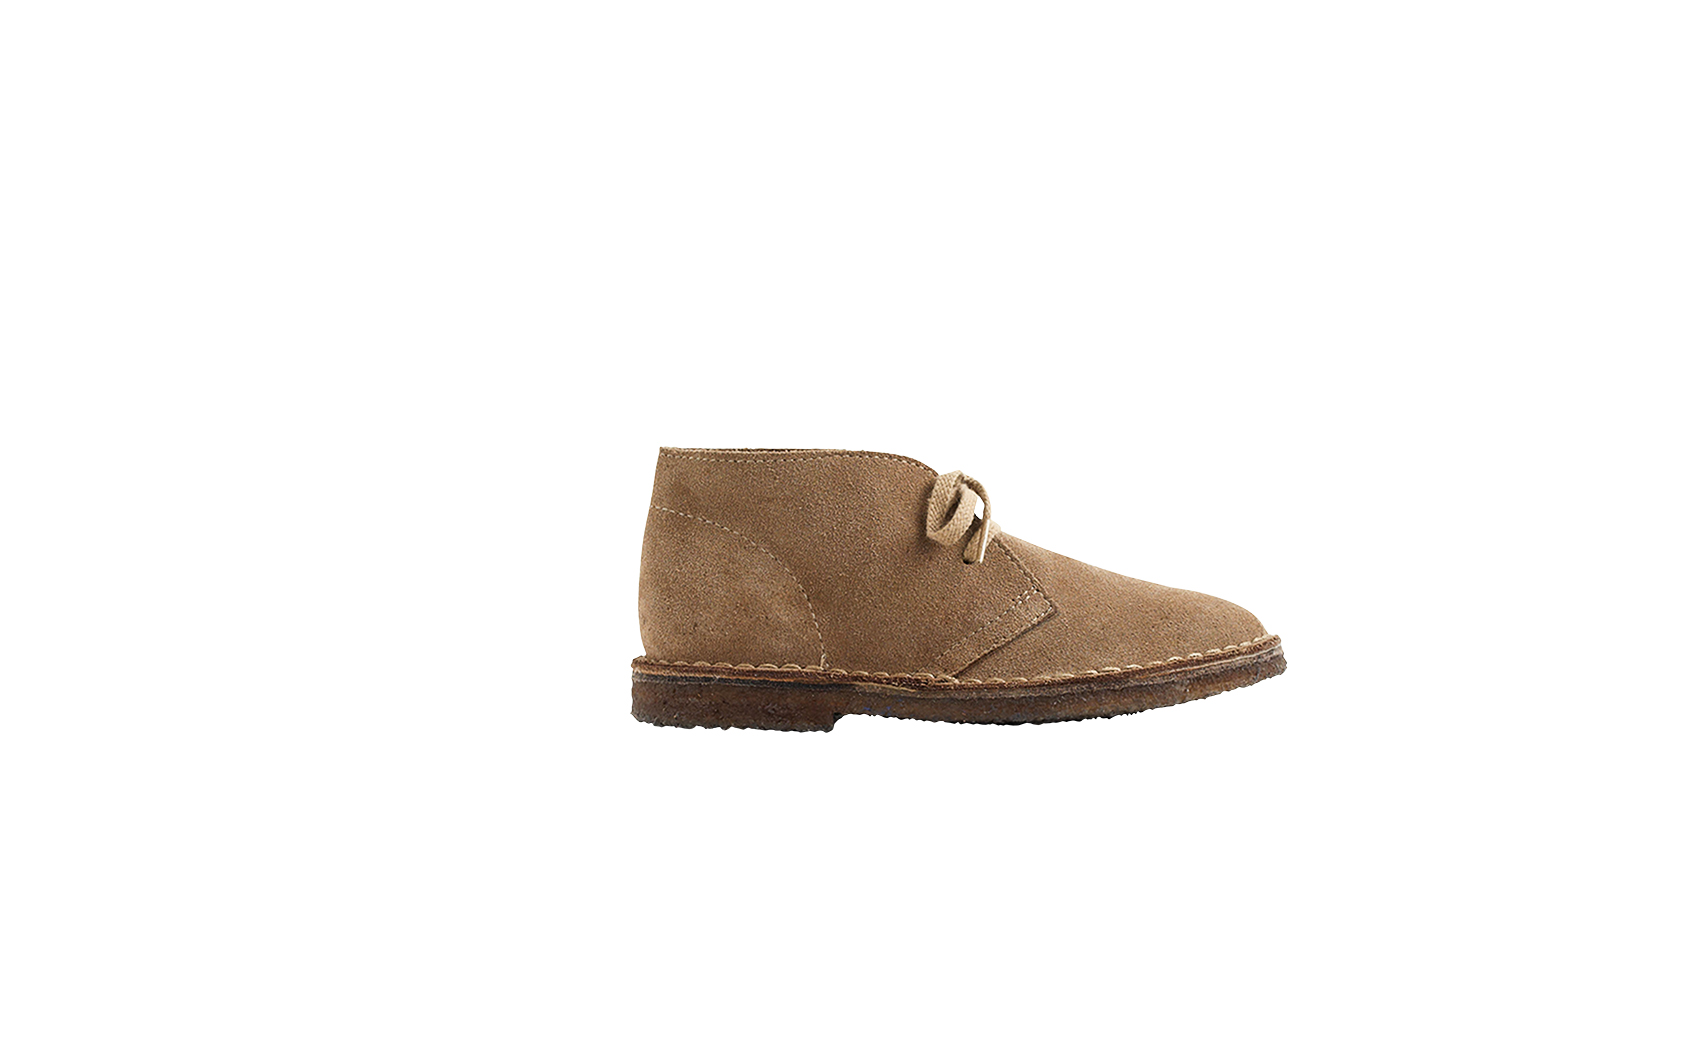 J Crew Kids' suede Macalister boots